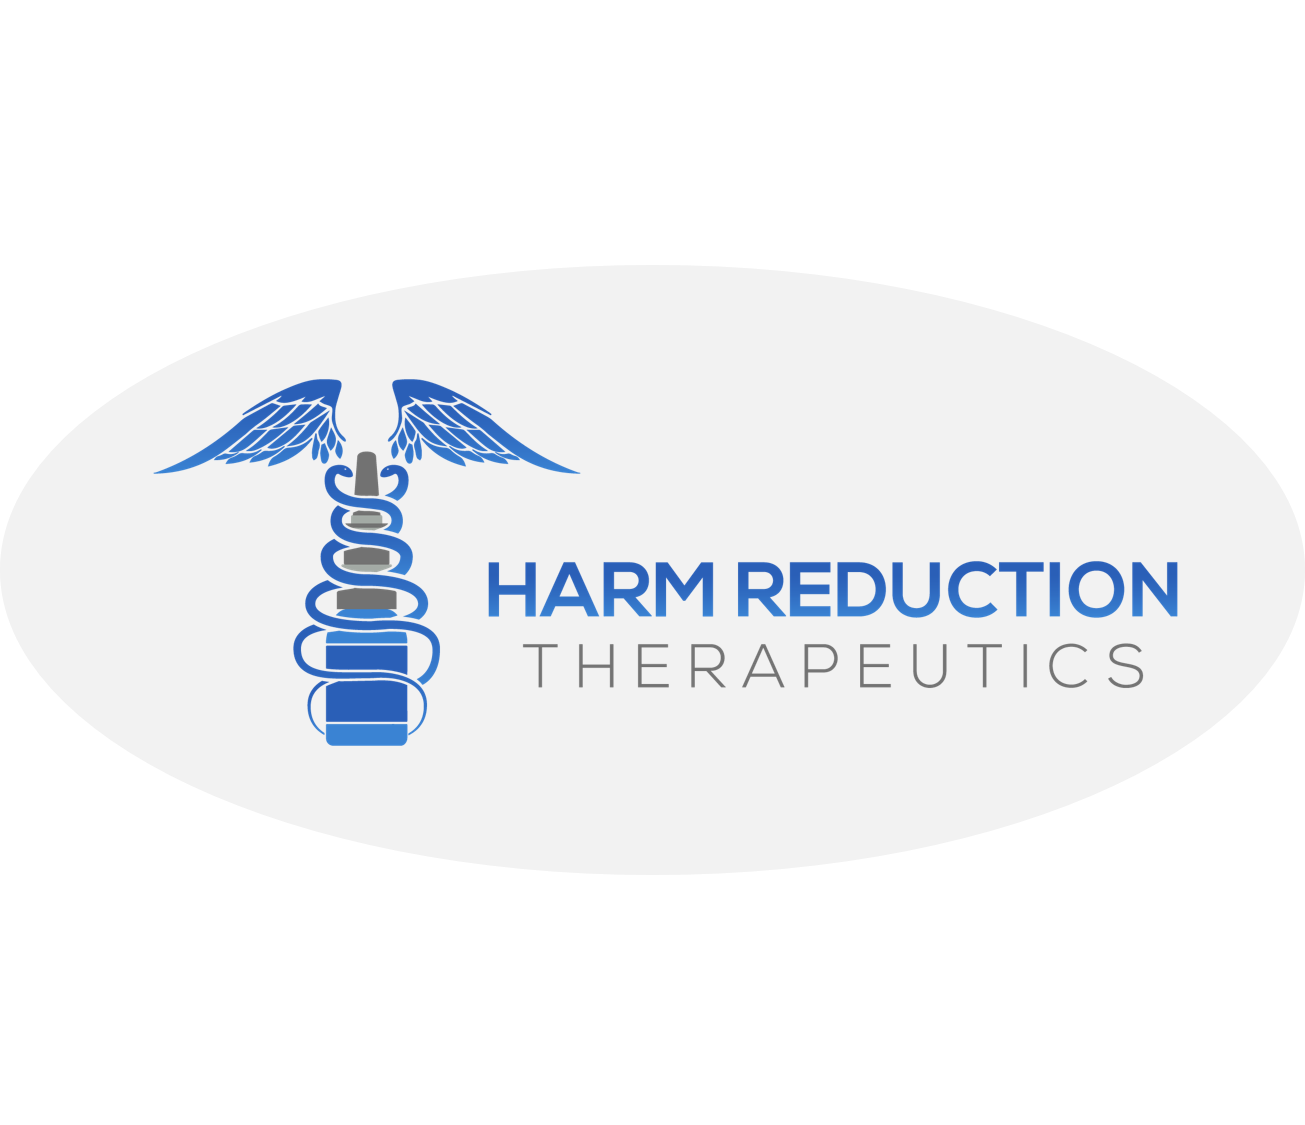 Harm Reduction Therapeutics